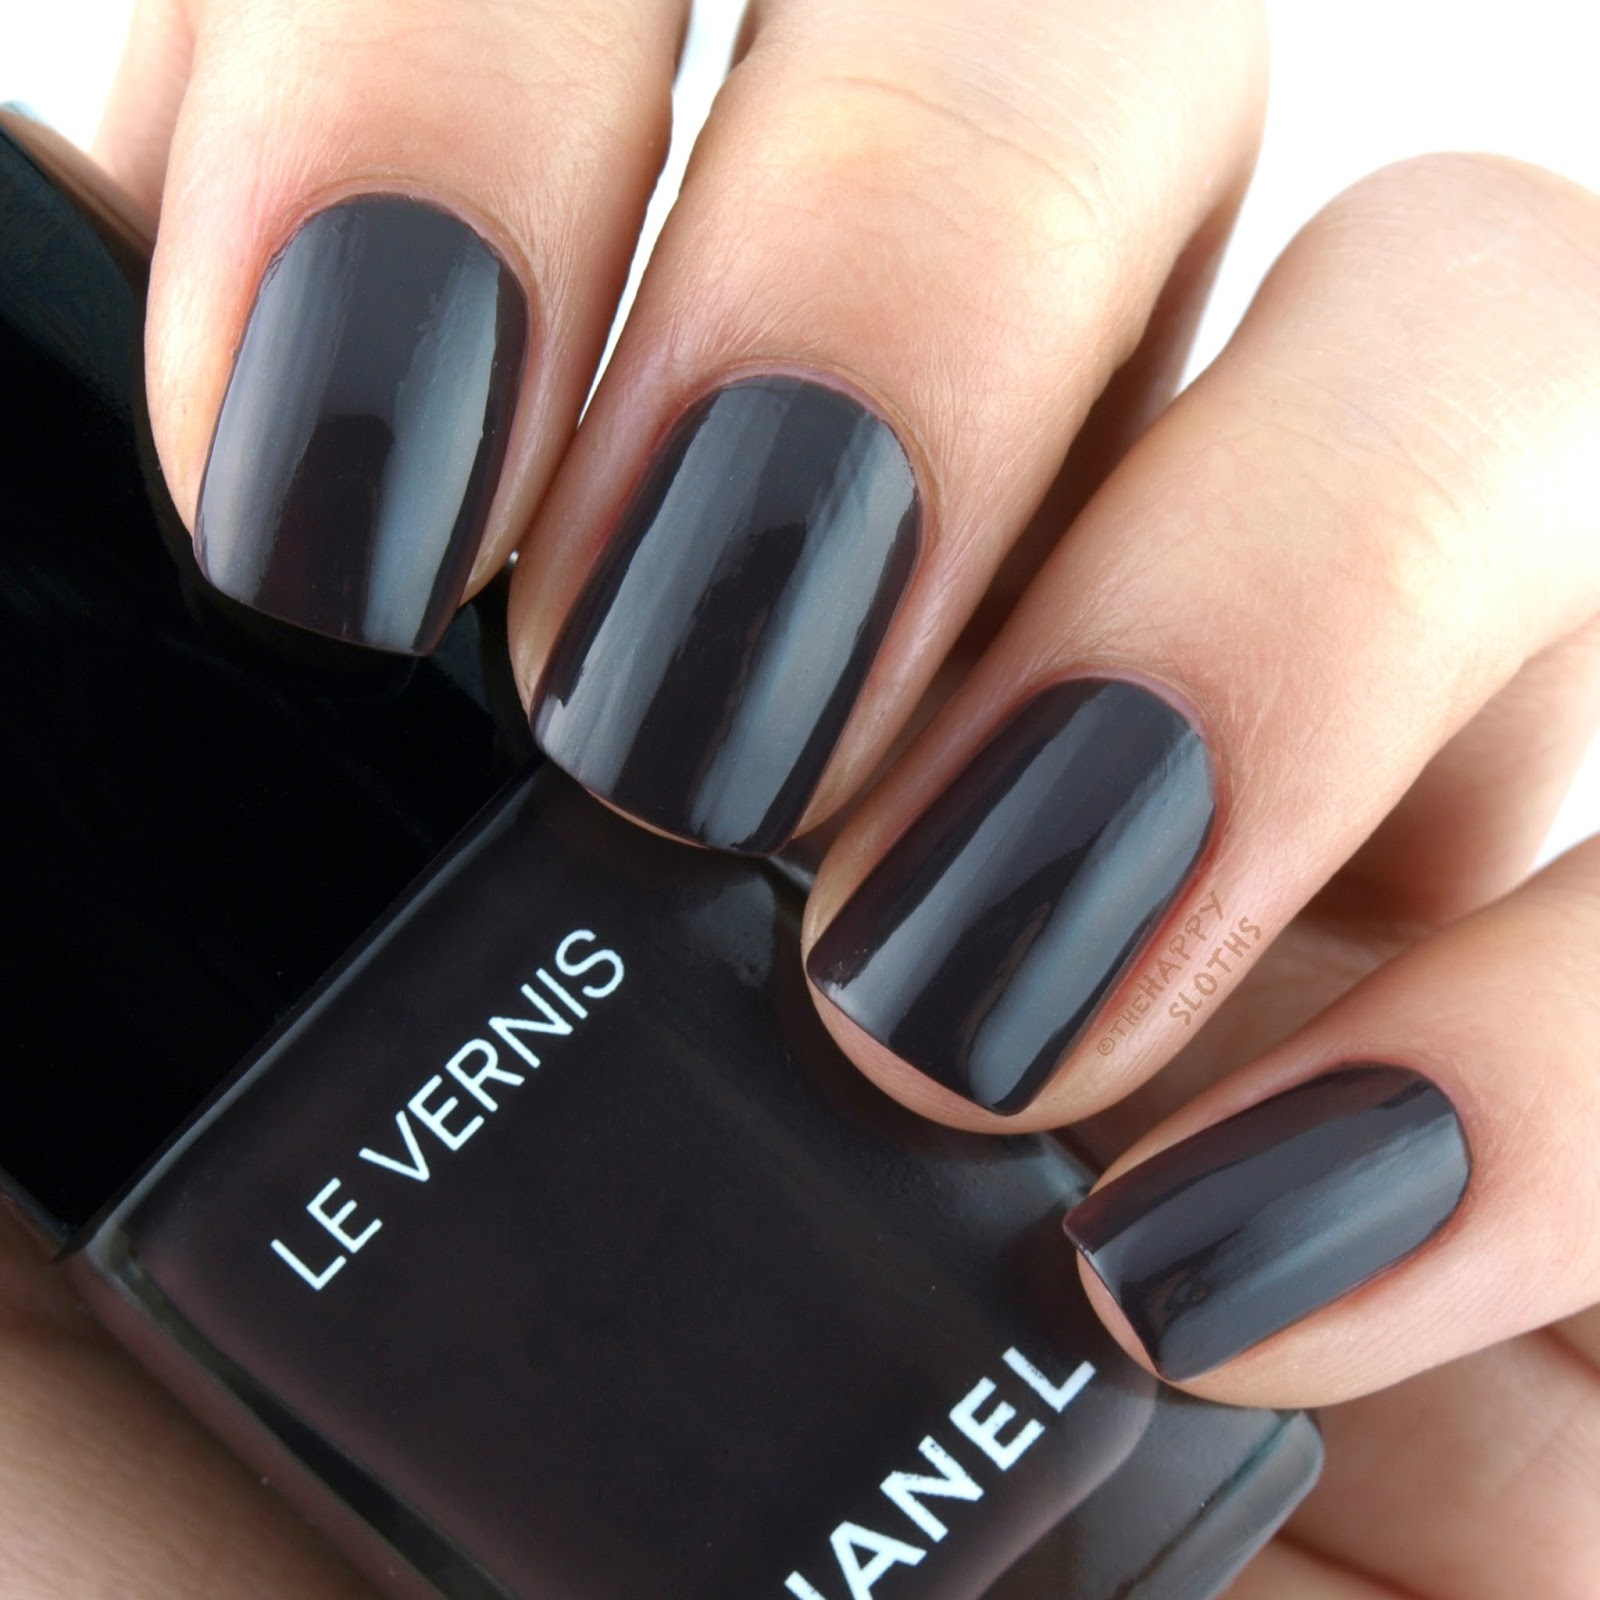 Chanel Spring 2017 Le Vernis 570 Androgyne: Review and Swatches